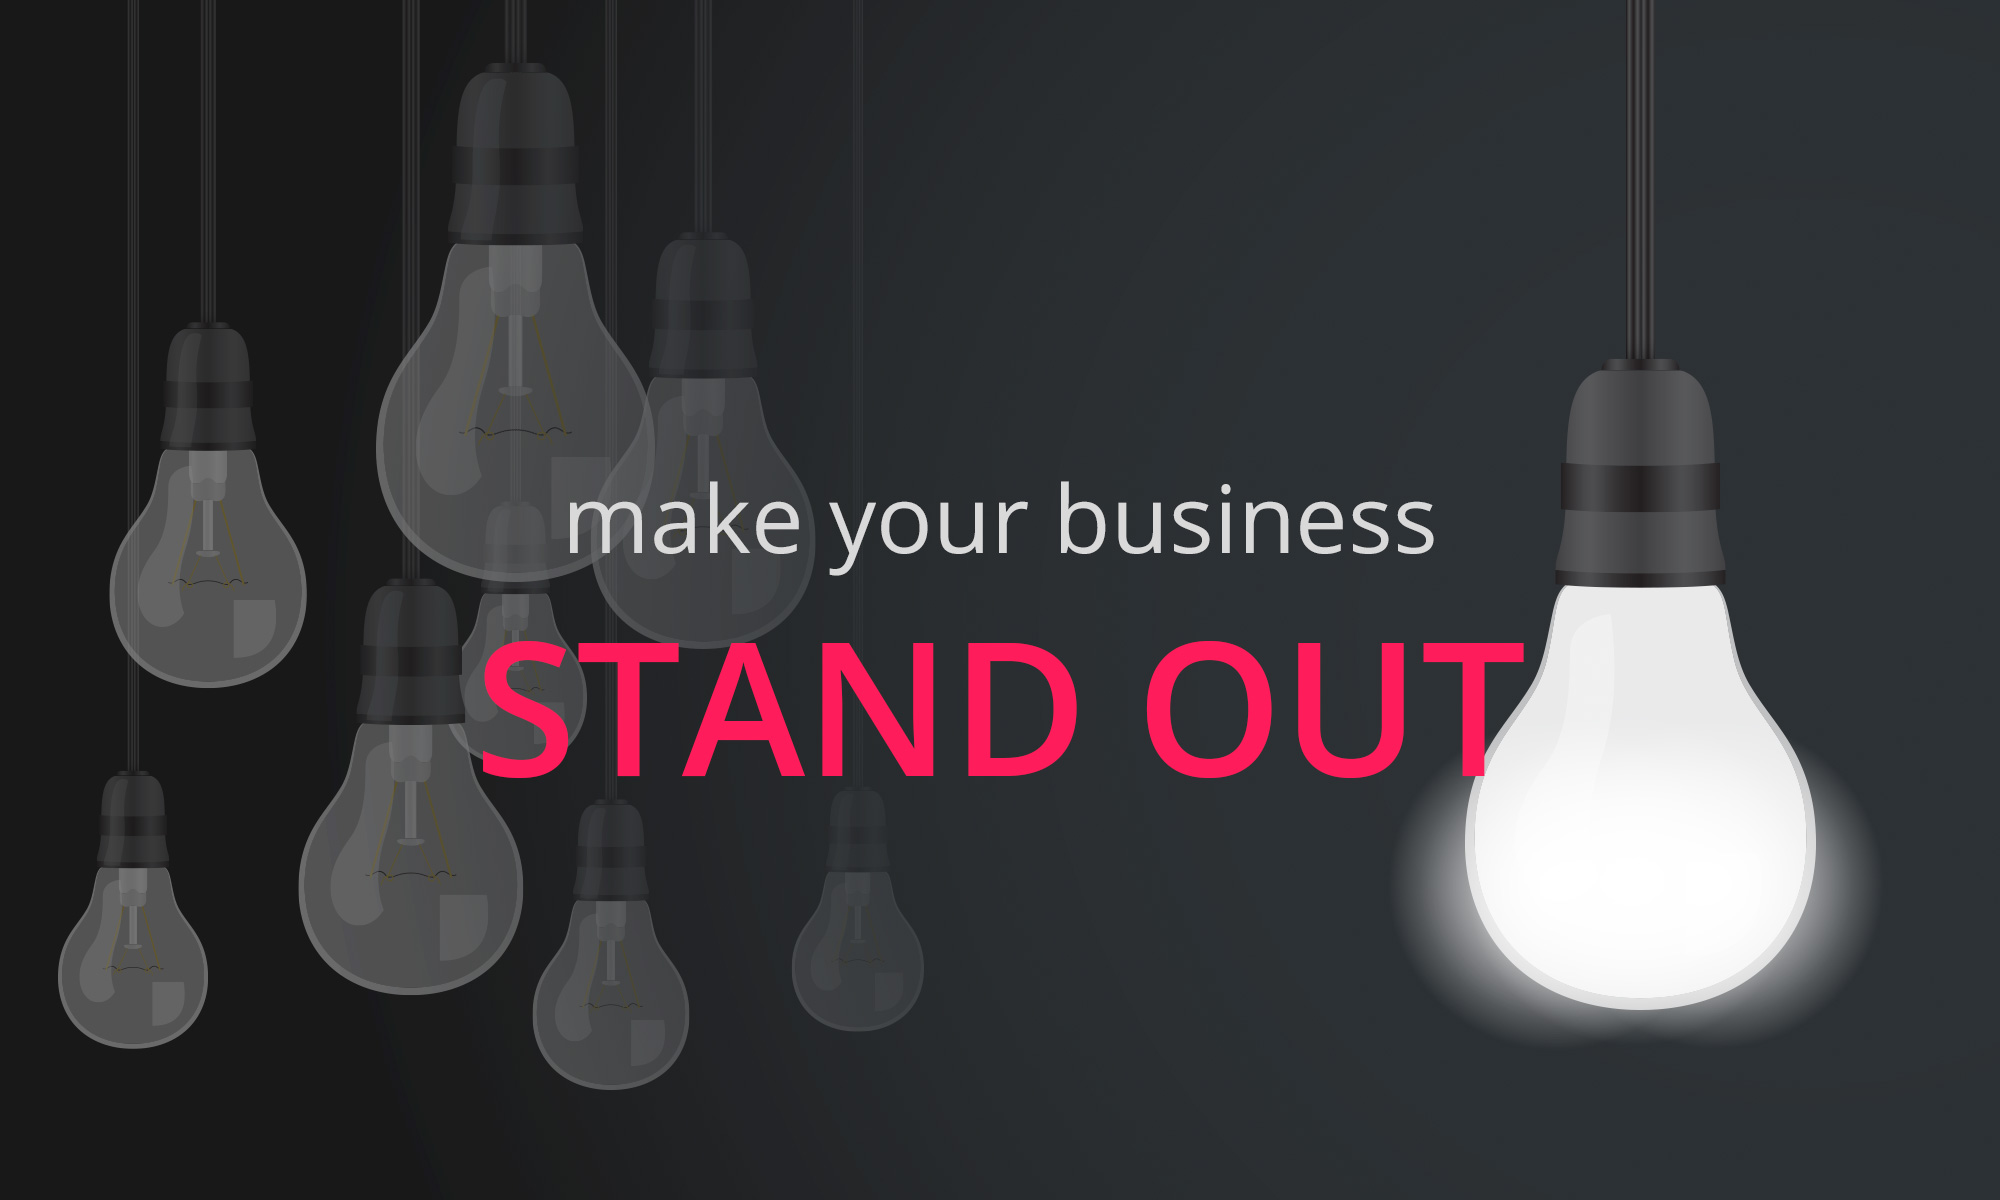 Creative Marketing - make your business STAND OUT